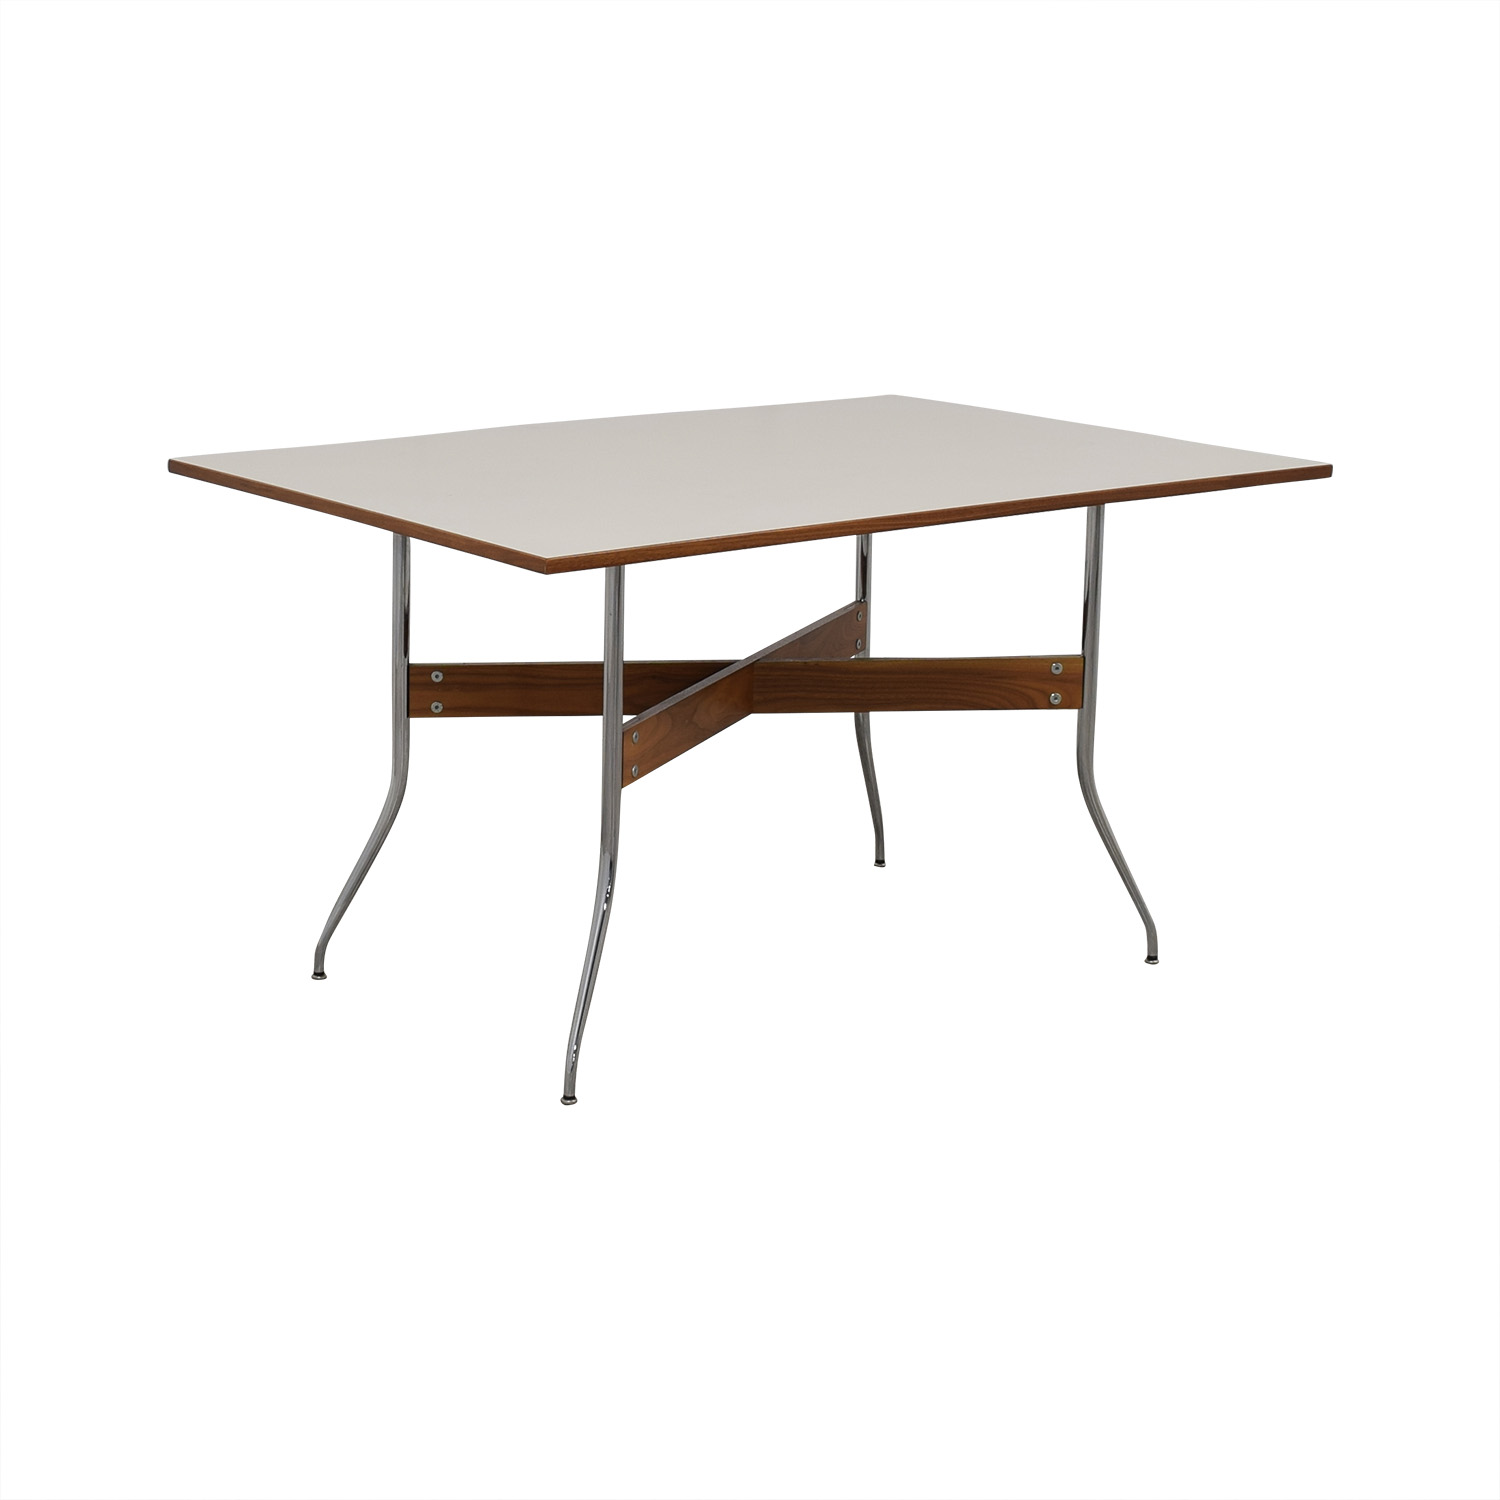 Herman Miller Herman Miller White George Nelson Swag Leg Dining Table with Rectangular Top coupon